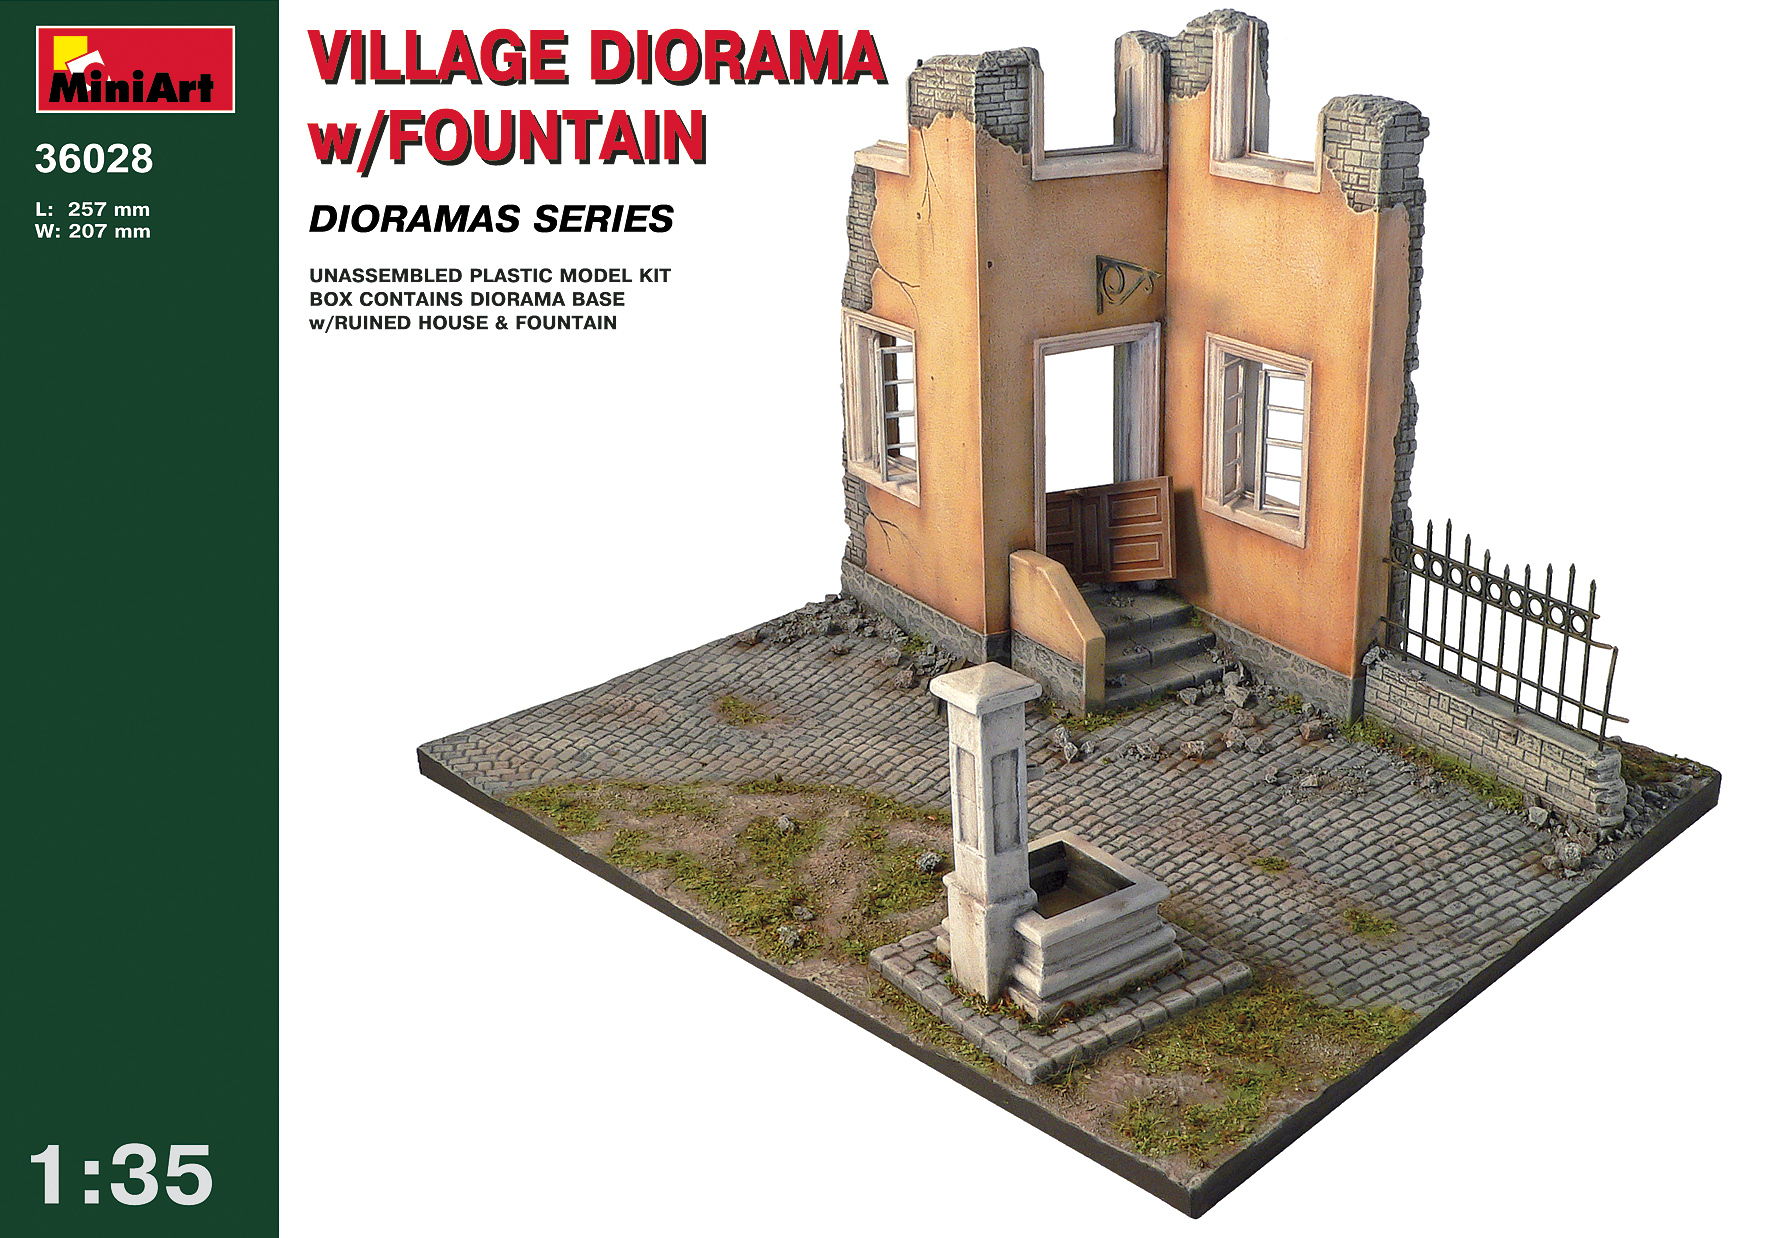 36028 VILLAGE DIORAMA w/FOUNTAIN